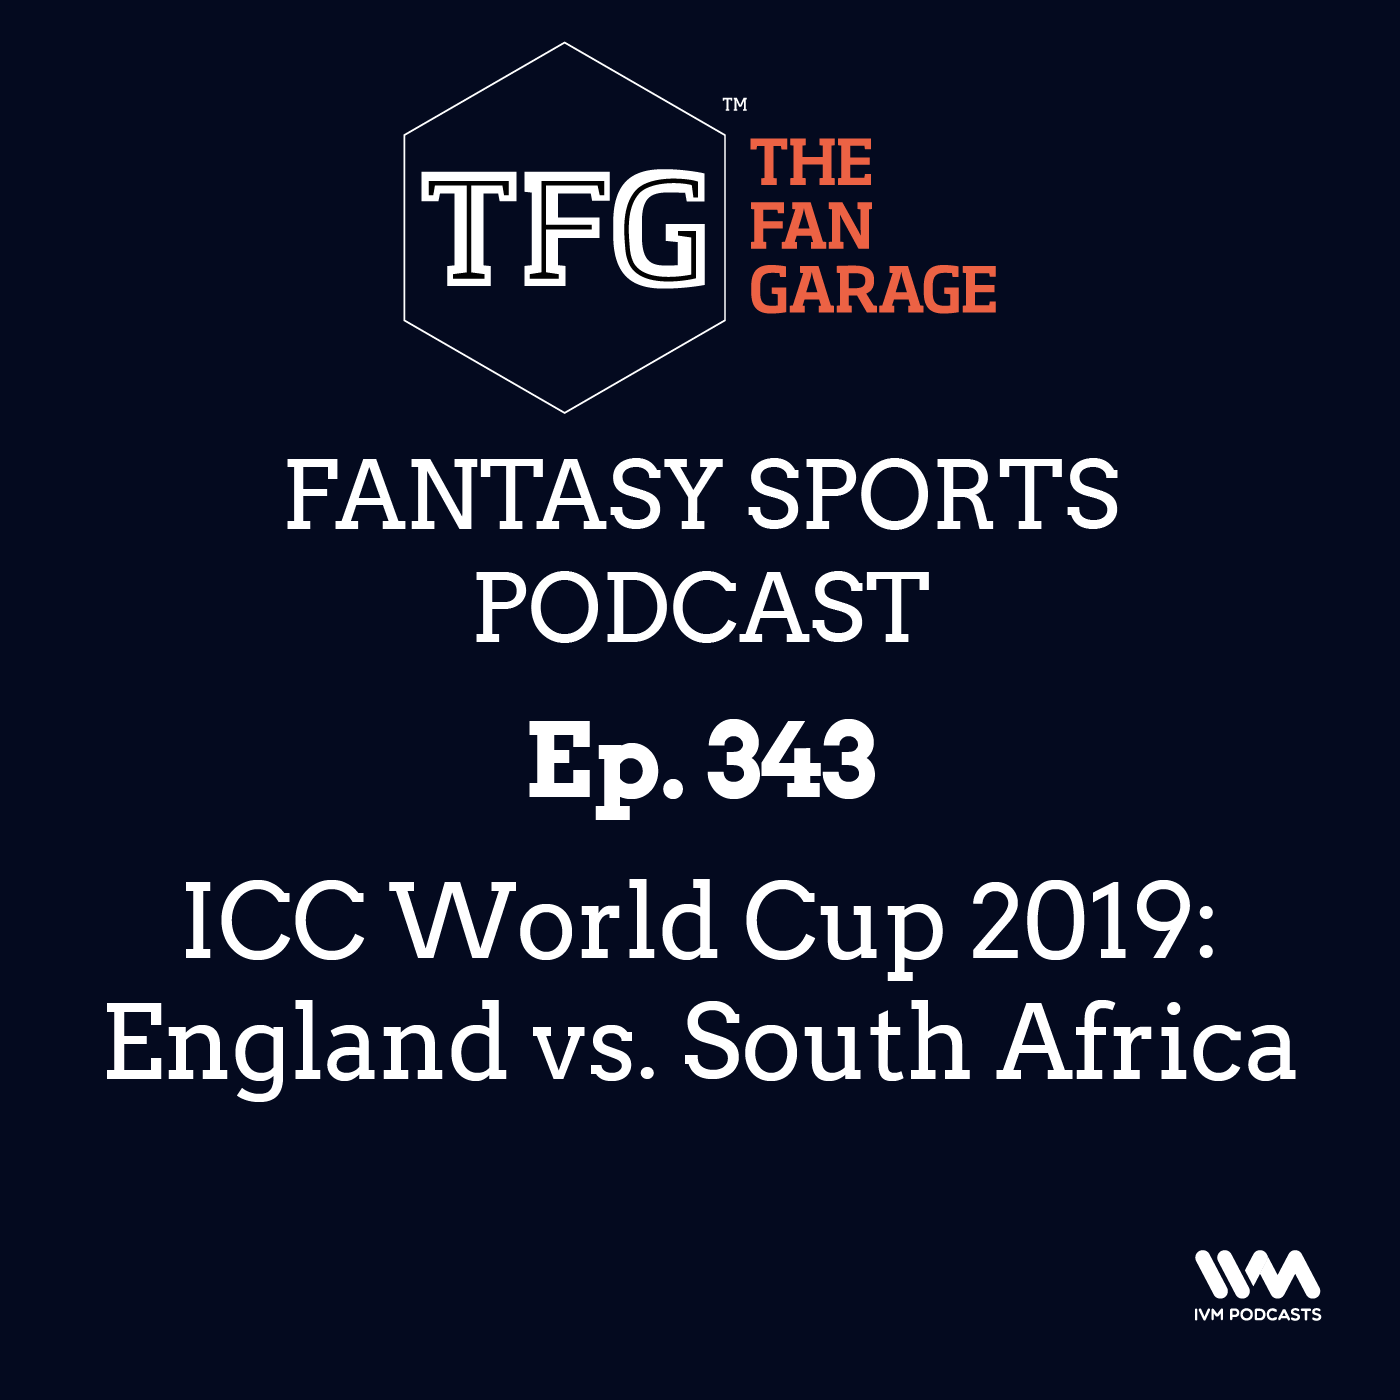 TFG Fantasy Sports Podcast Ep. 343: ICC World Cup 2019: England vs. South Africa